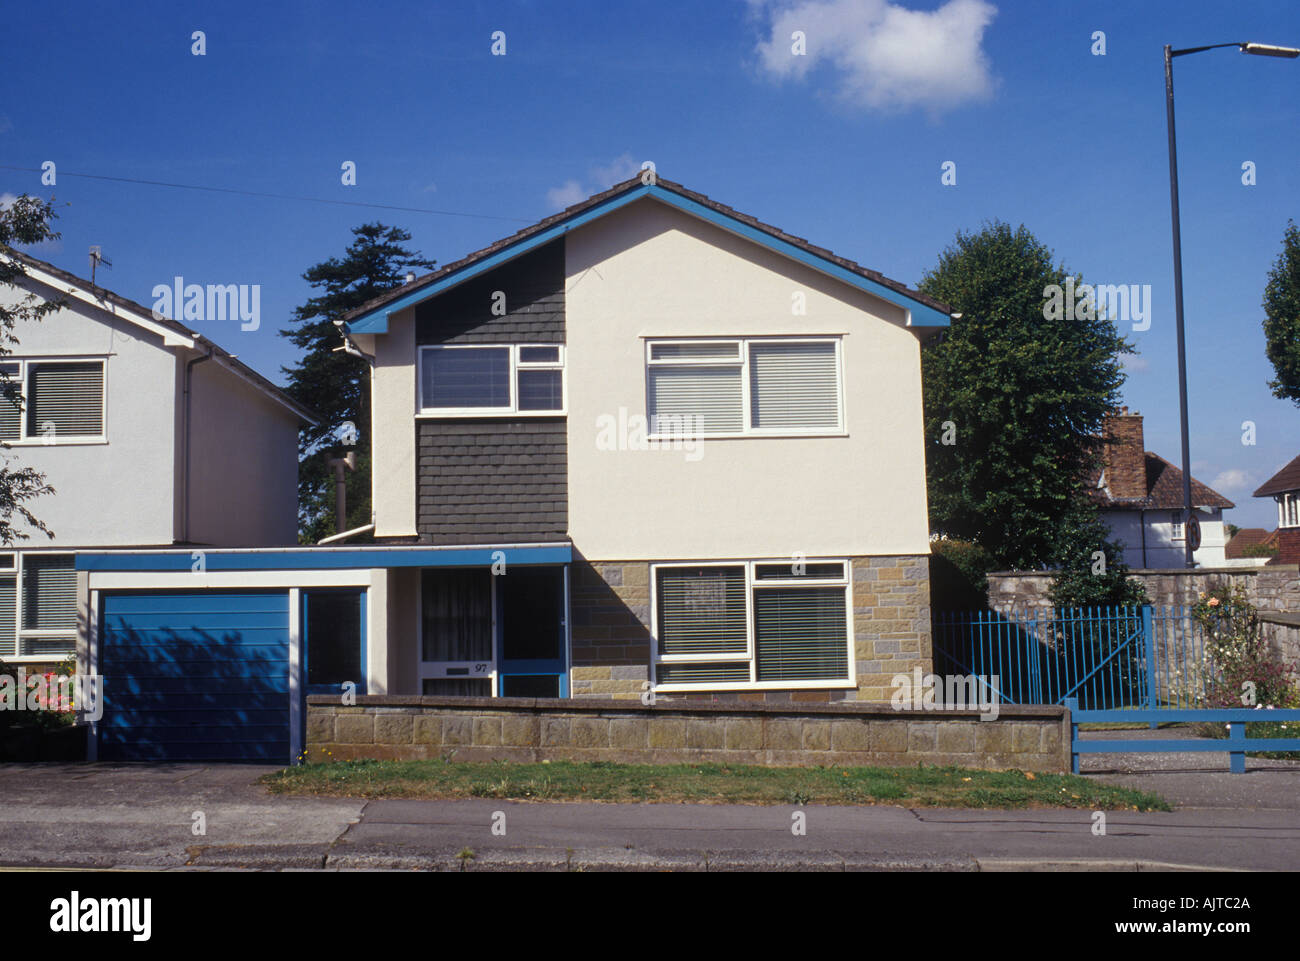 1950S House Adorable 1950S House Stock Photos & 1950S House Stock Images  Alamy Design Ideas